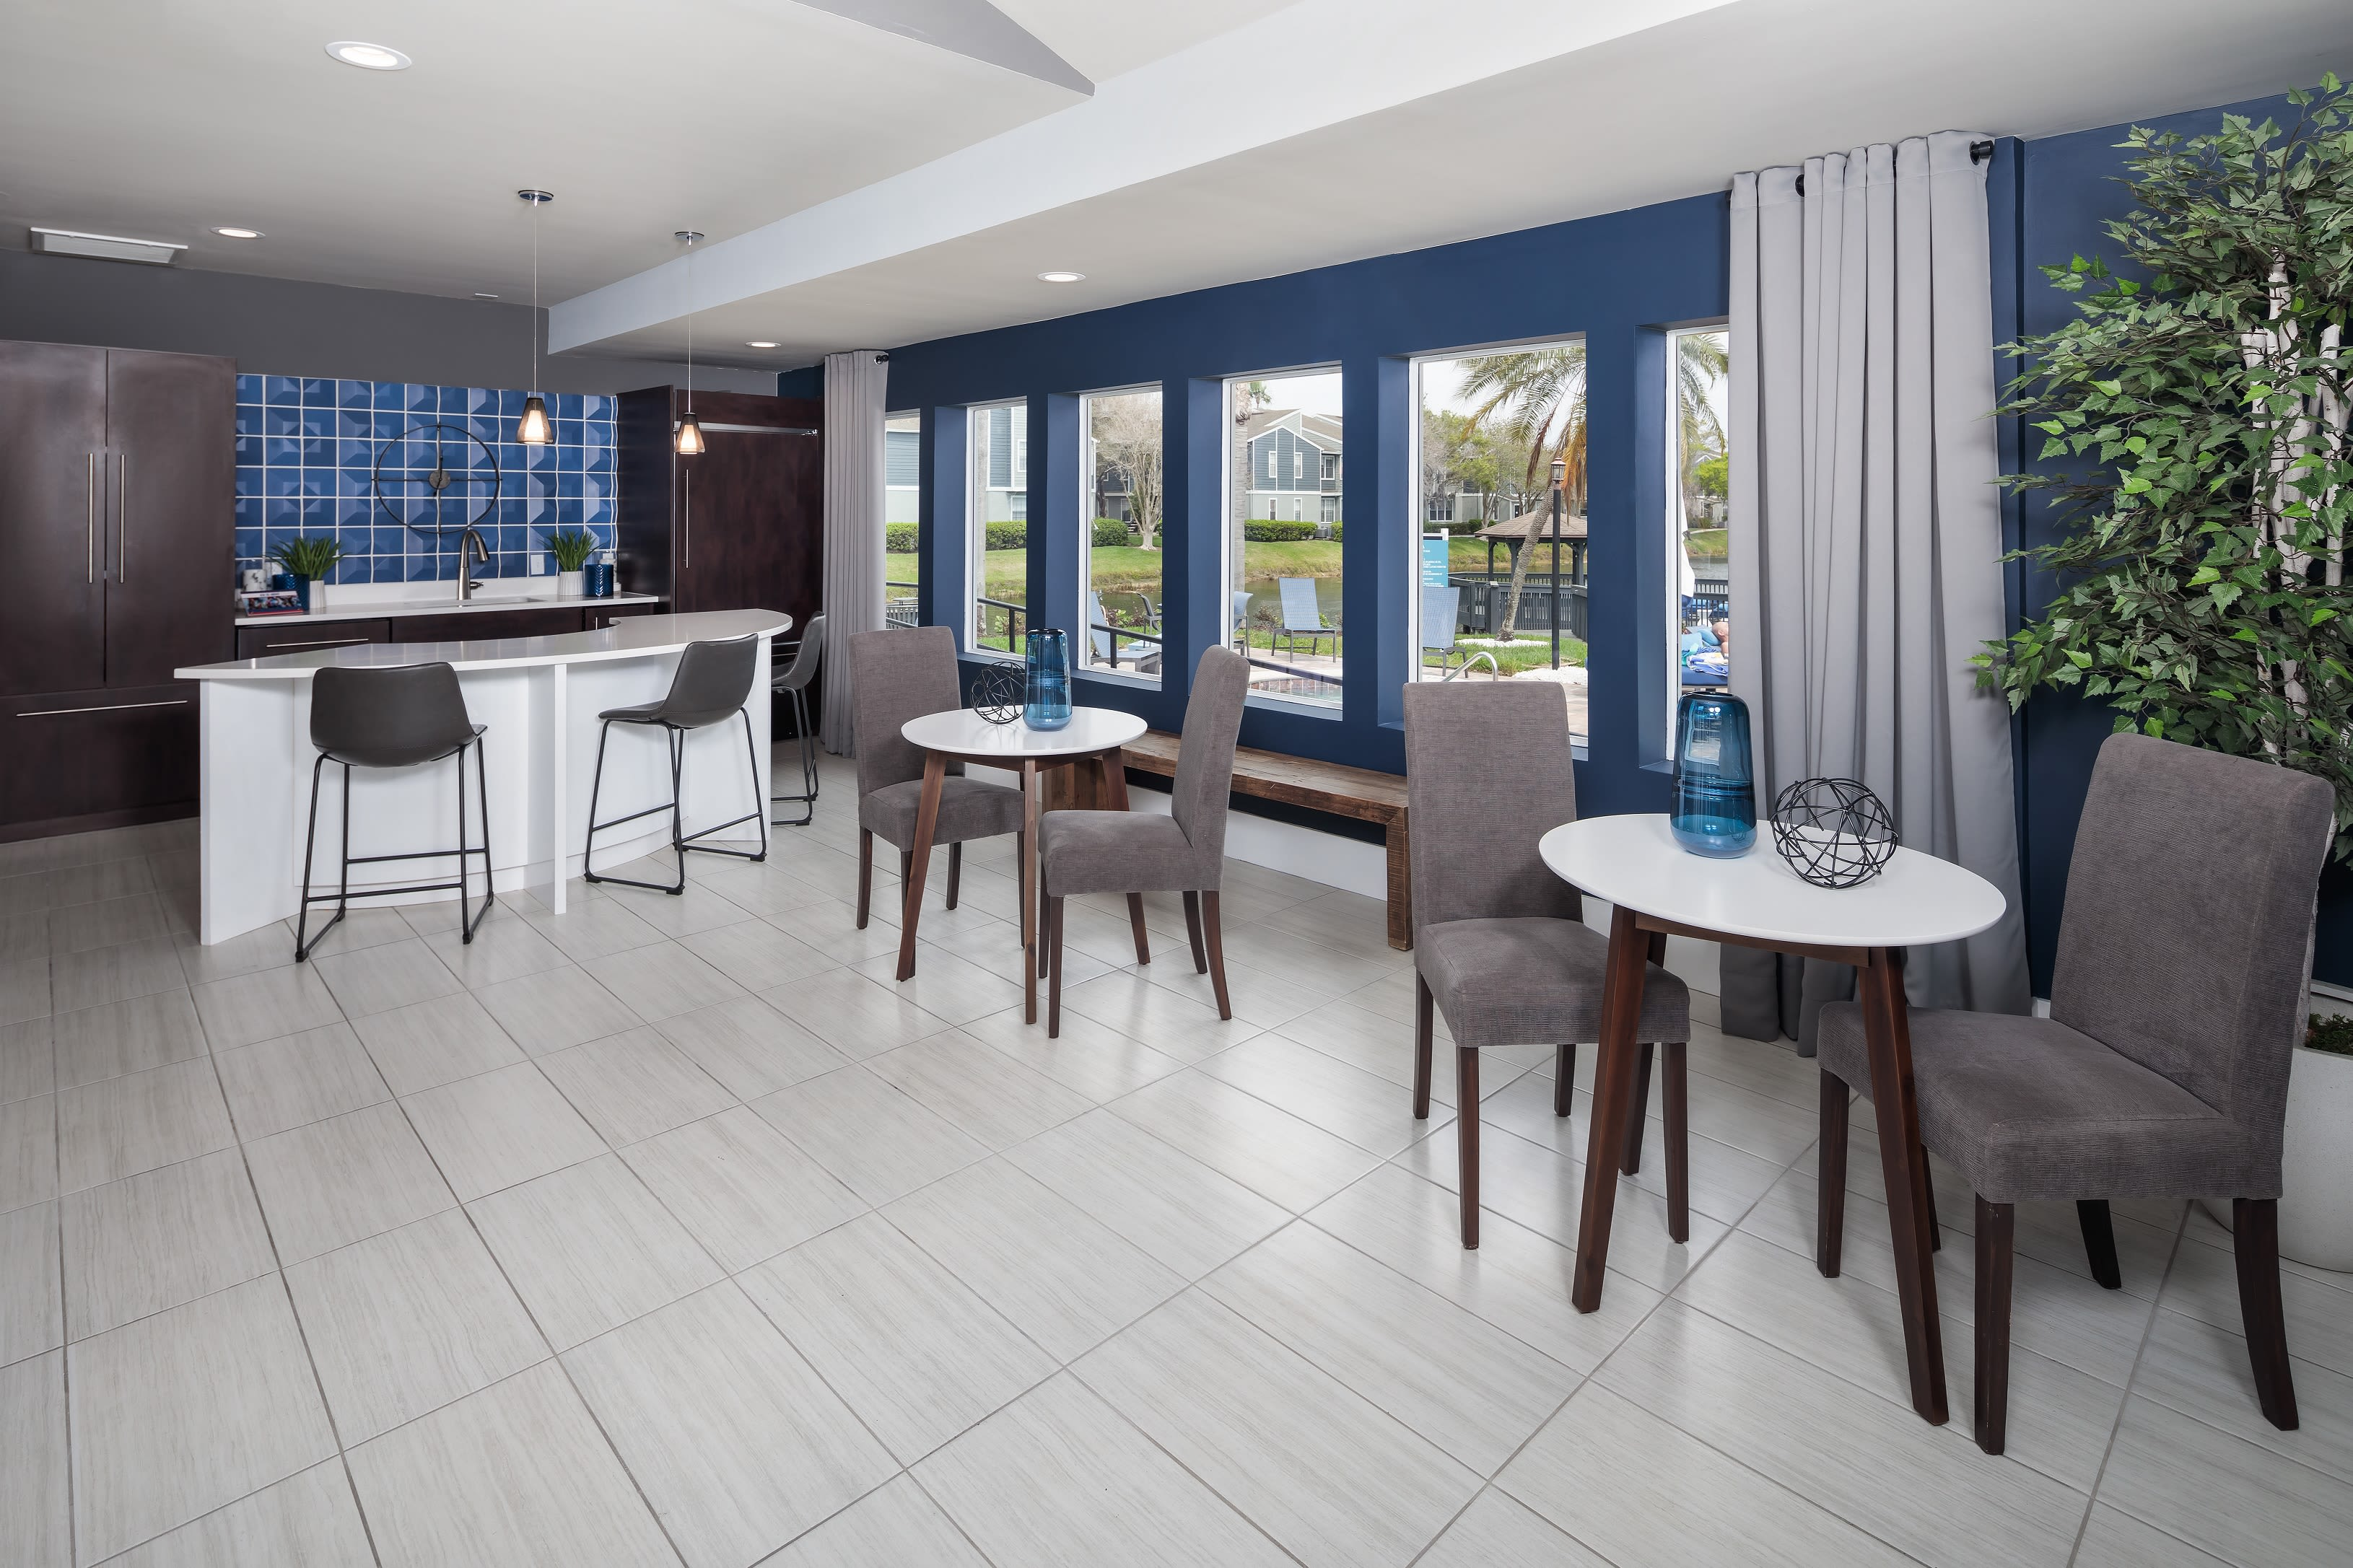 View virtual tour of the leasing office and clubhouse at Fairways at Feather Sound in Clearwater, Florida